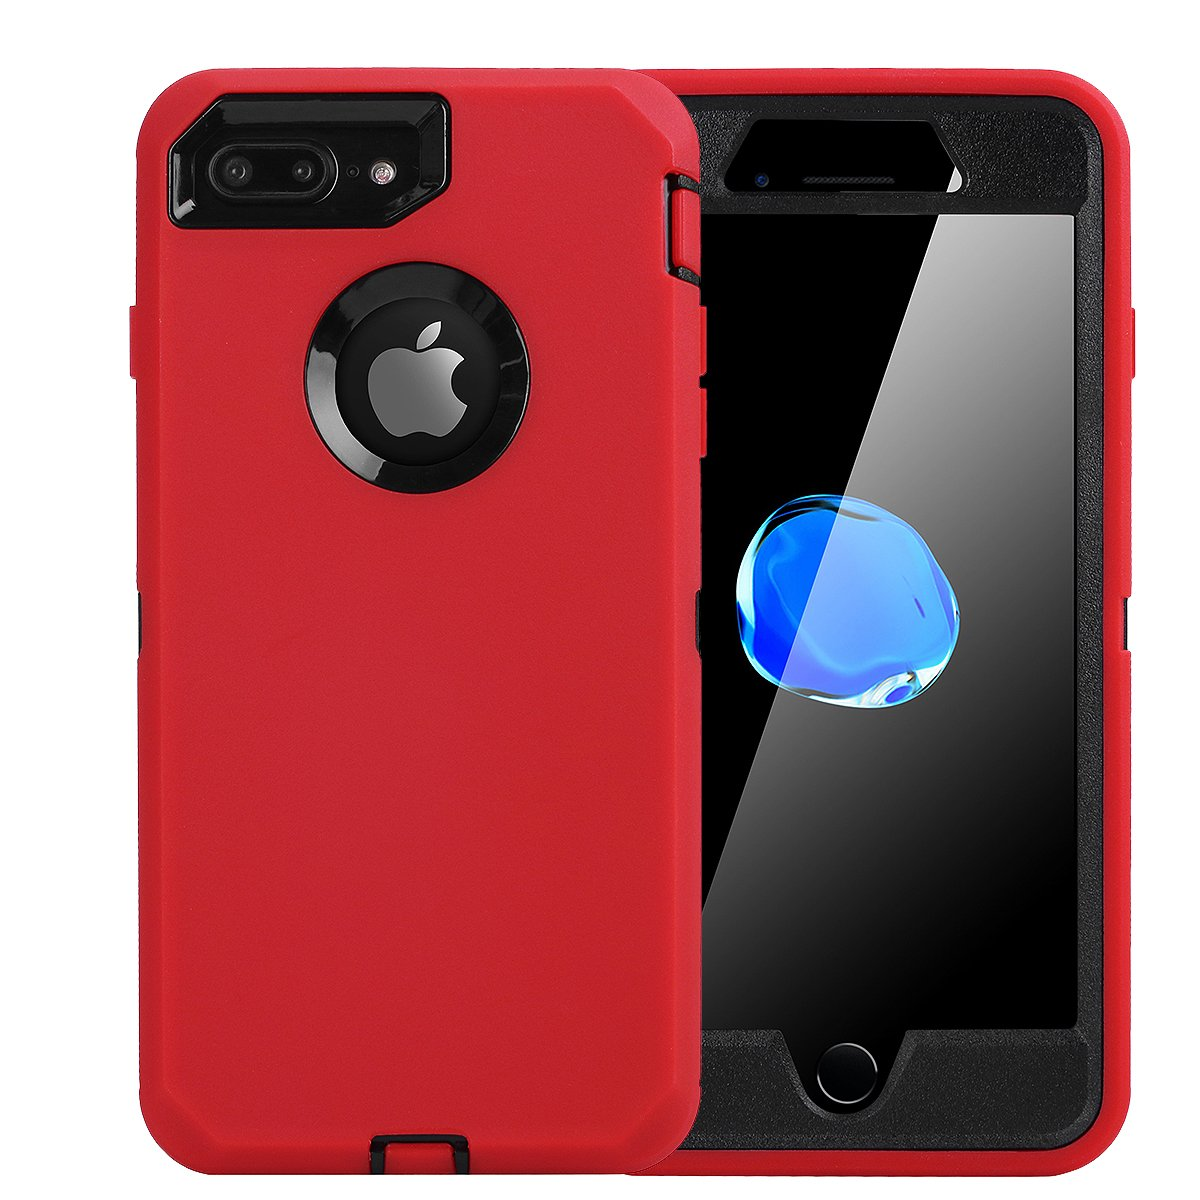 iPhone 8 Plus/ 7 Plus Case, Daul Layer Armor [Full body] [Heavy Duty Protection ] Shock Reduction / Bumper Case with built in Screen Protector for Apple iPhone 8 Plus/7 Plus (Black/Red)